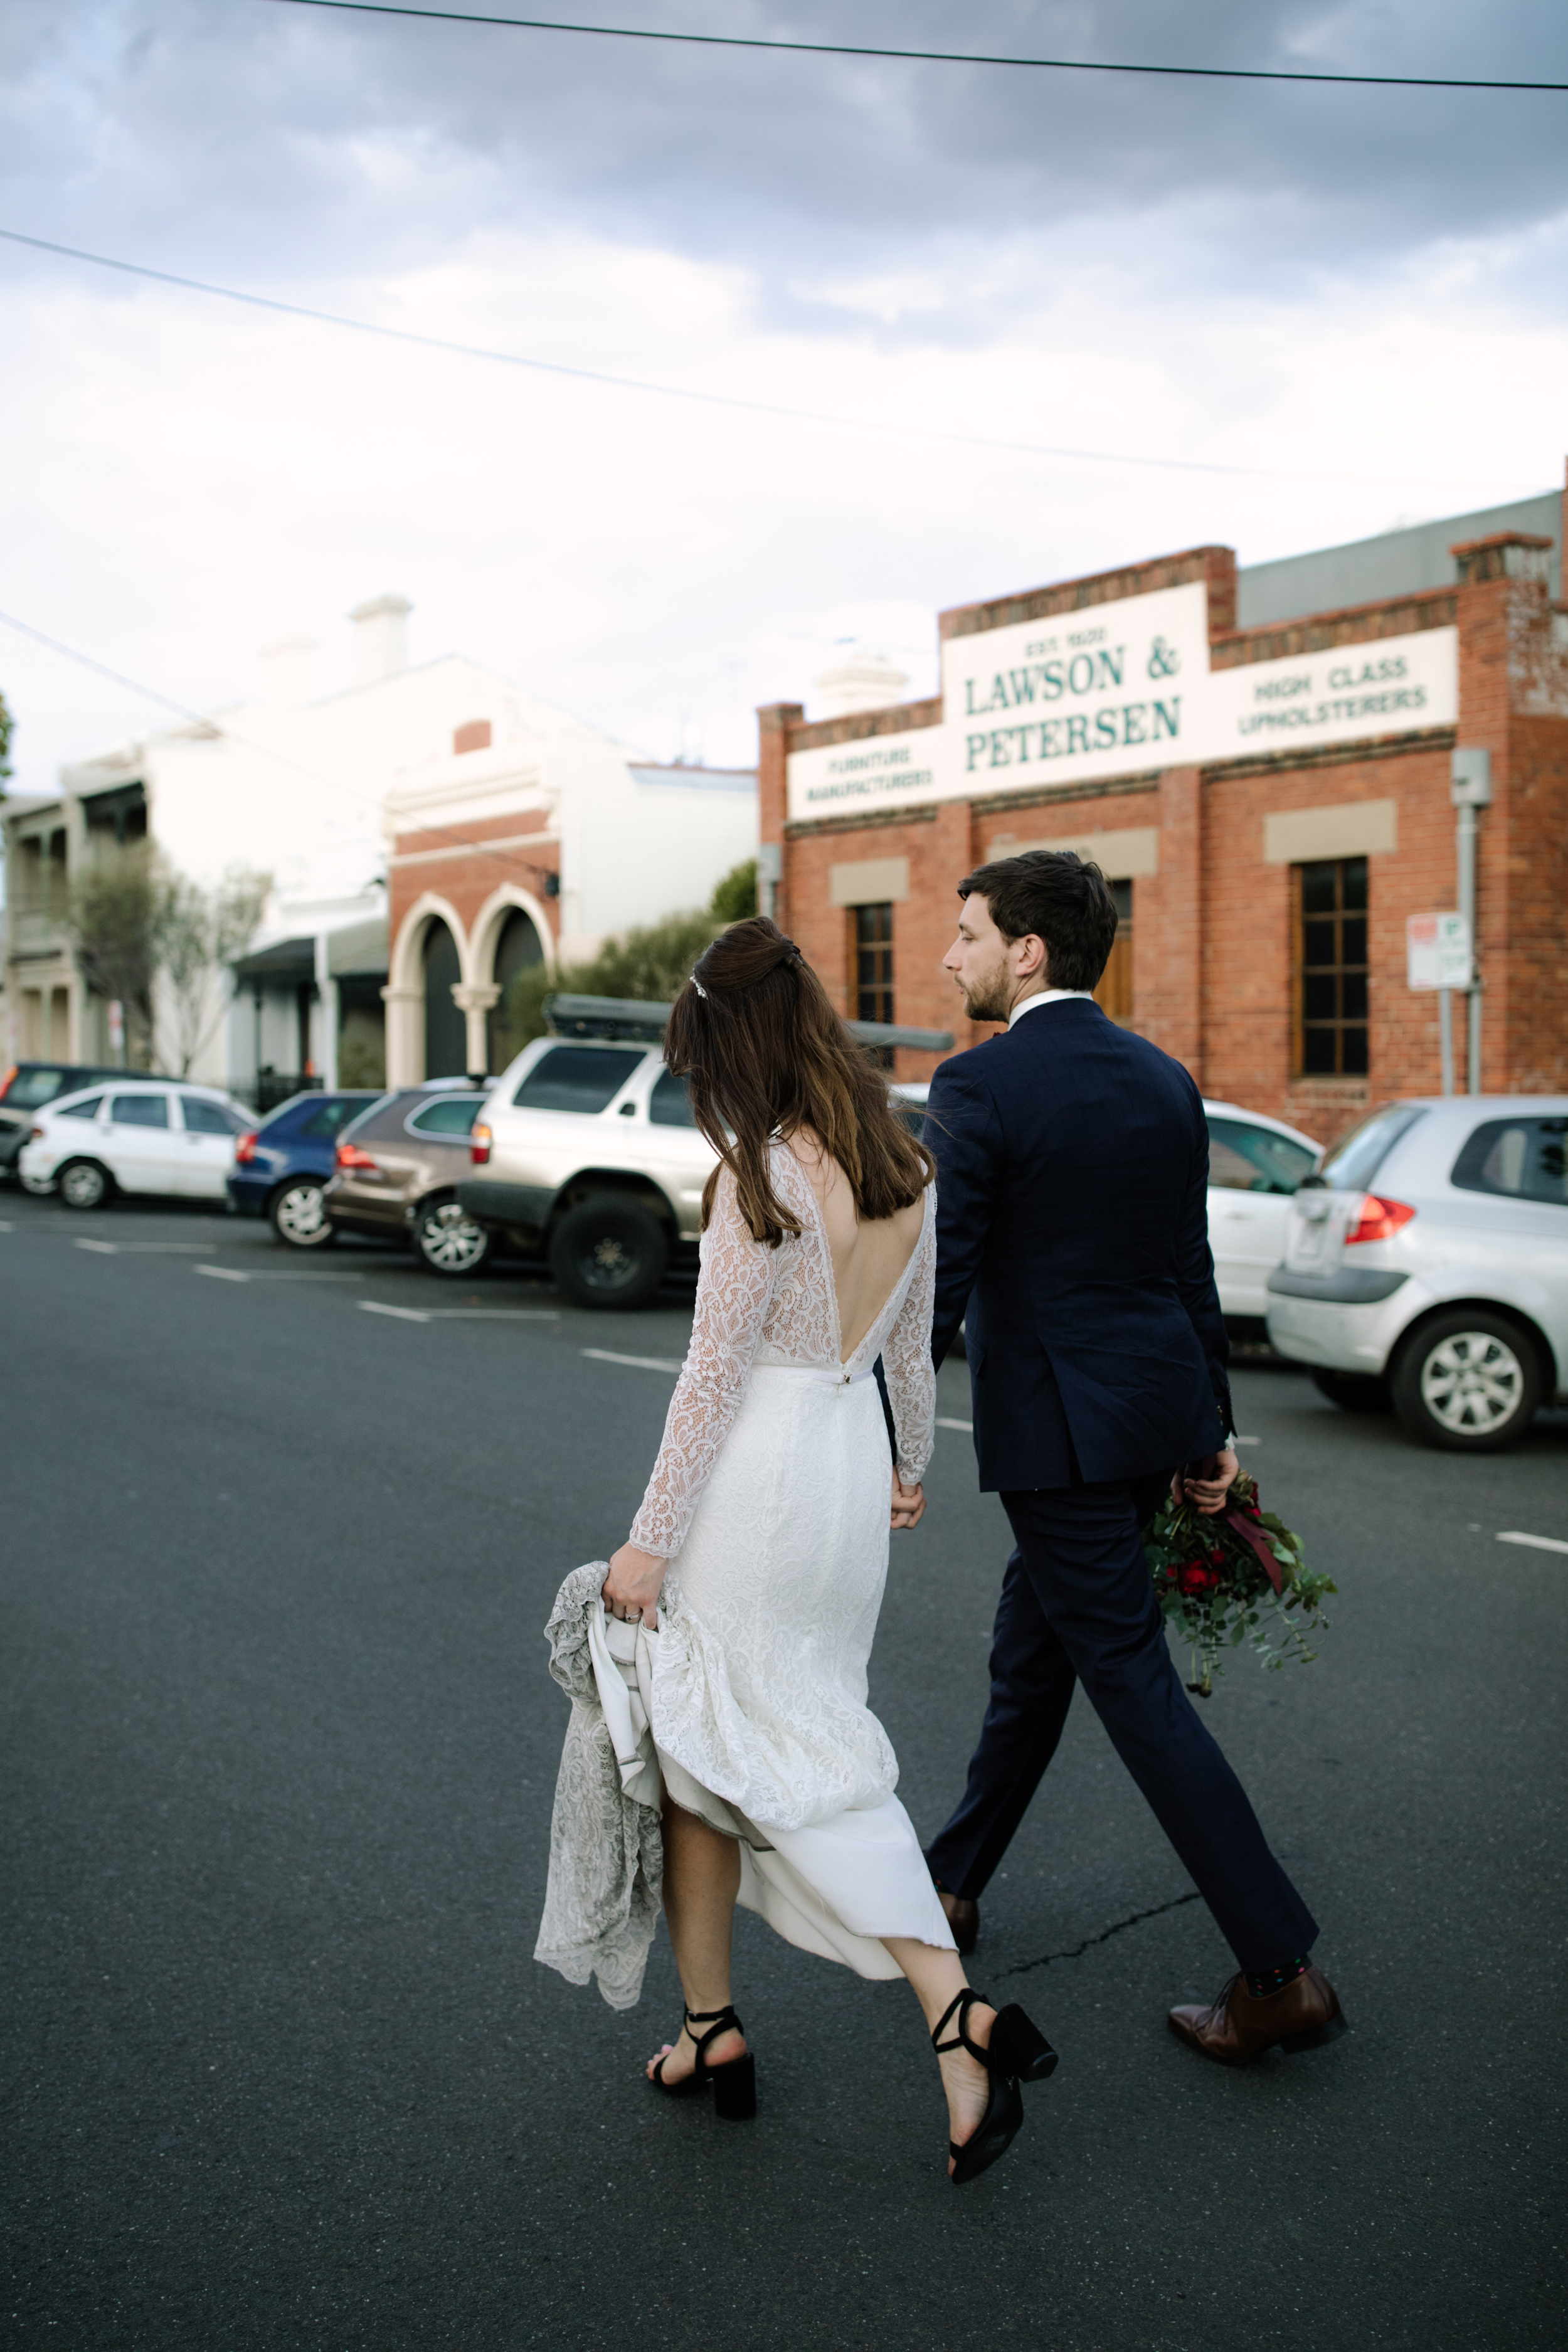 I_Got_You_Babe_Weddings_Emily_Matt_Rupert_Glasshaus_Melbourne0151.JPG